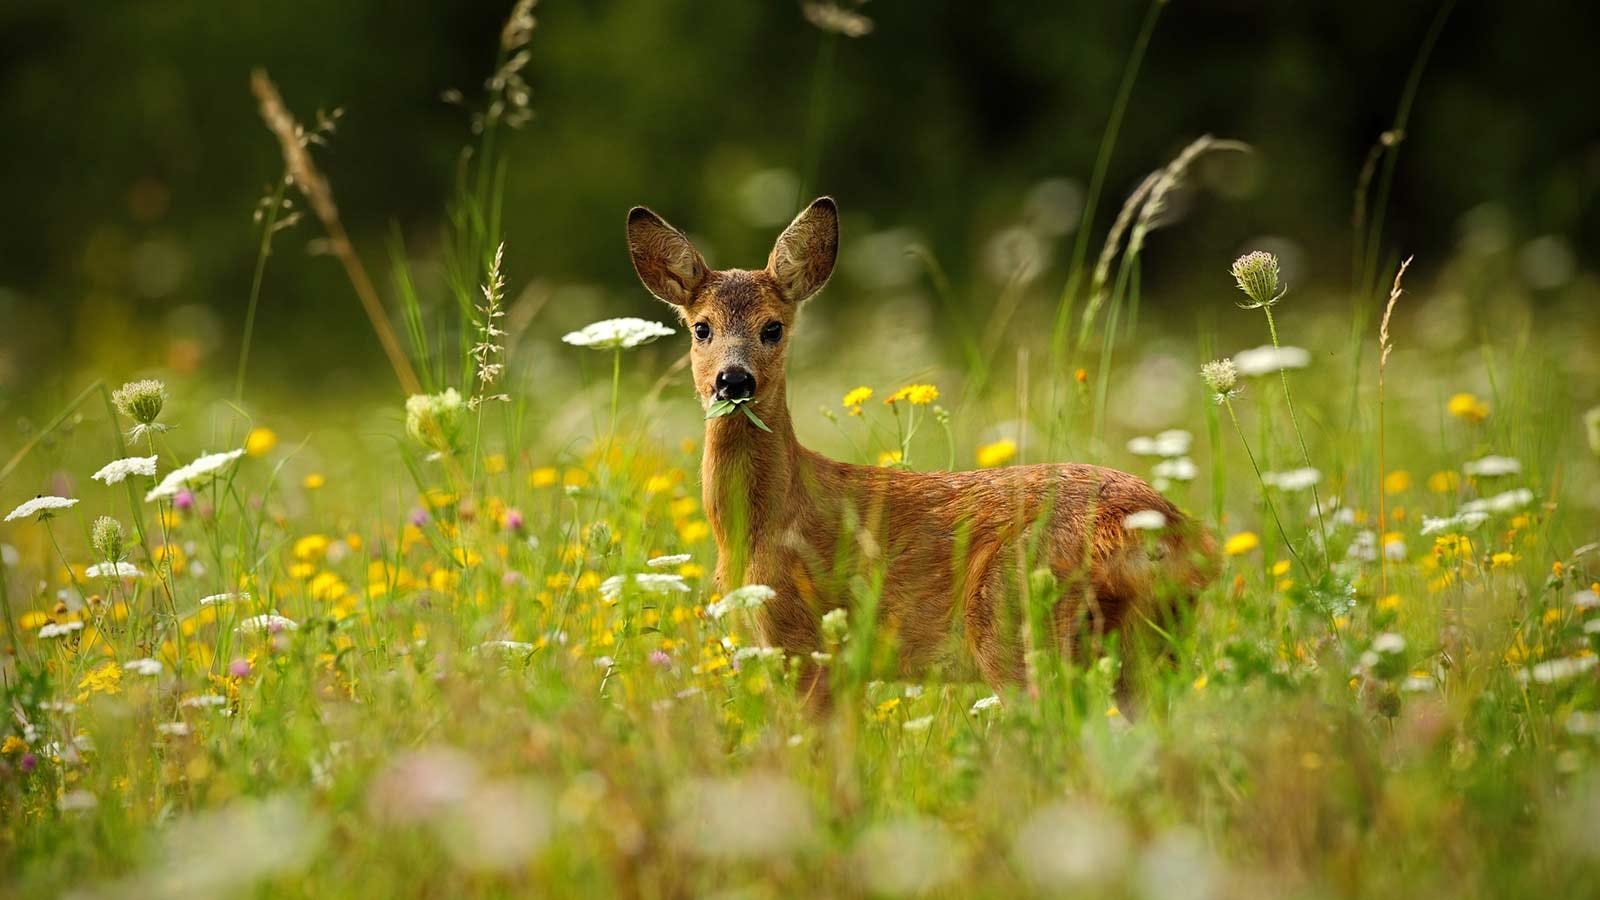 A deer standing among wildflowers, curiously looking at the photographer.